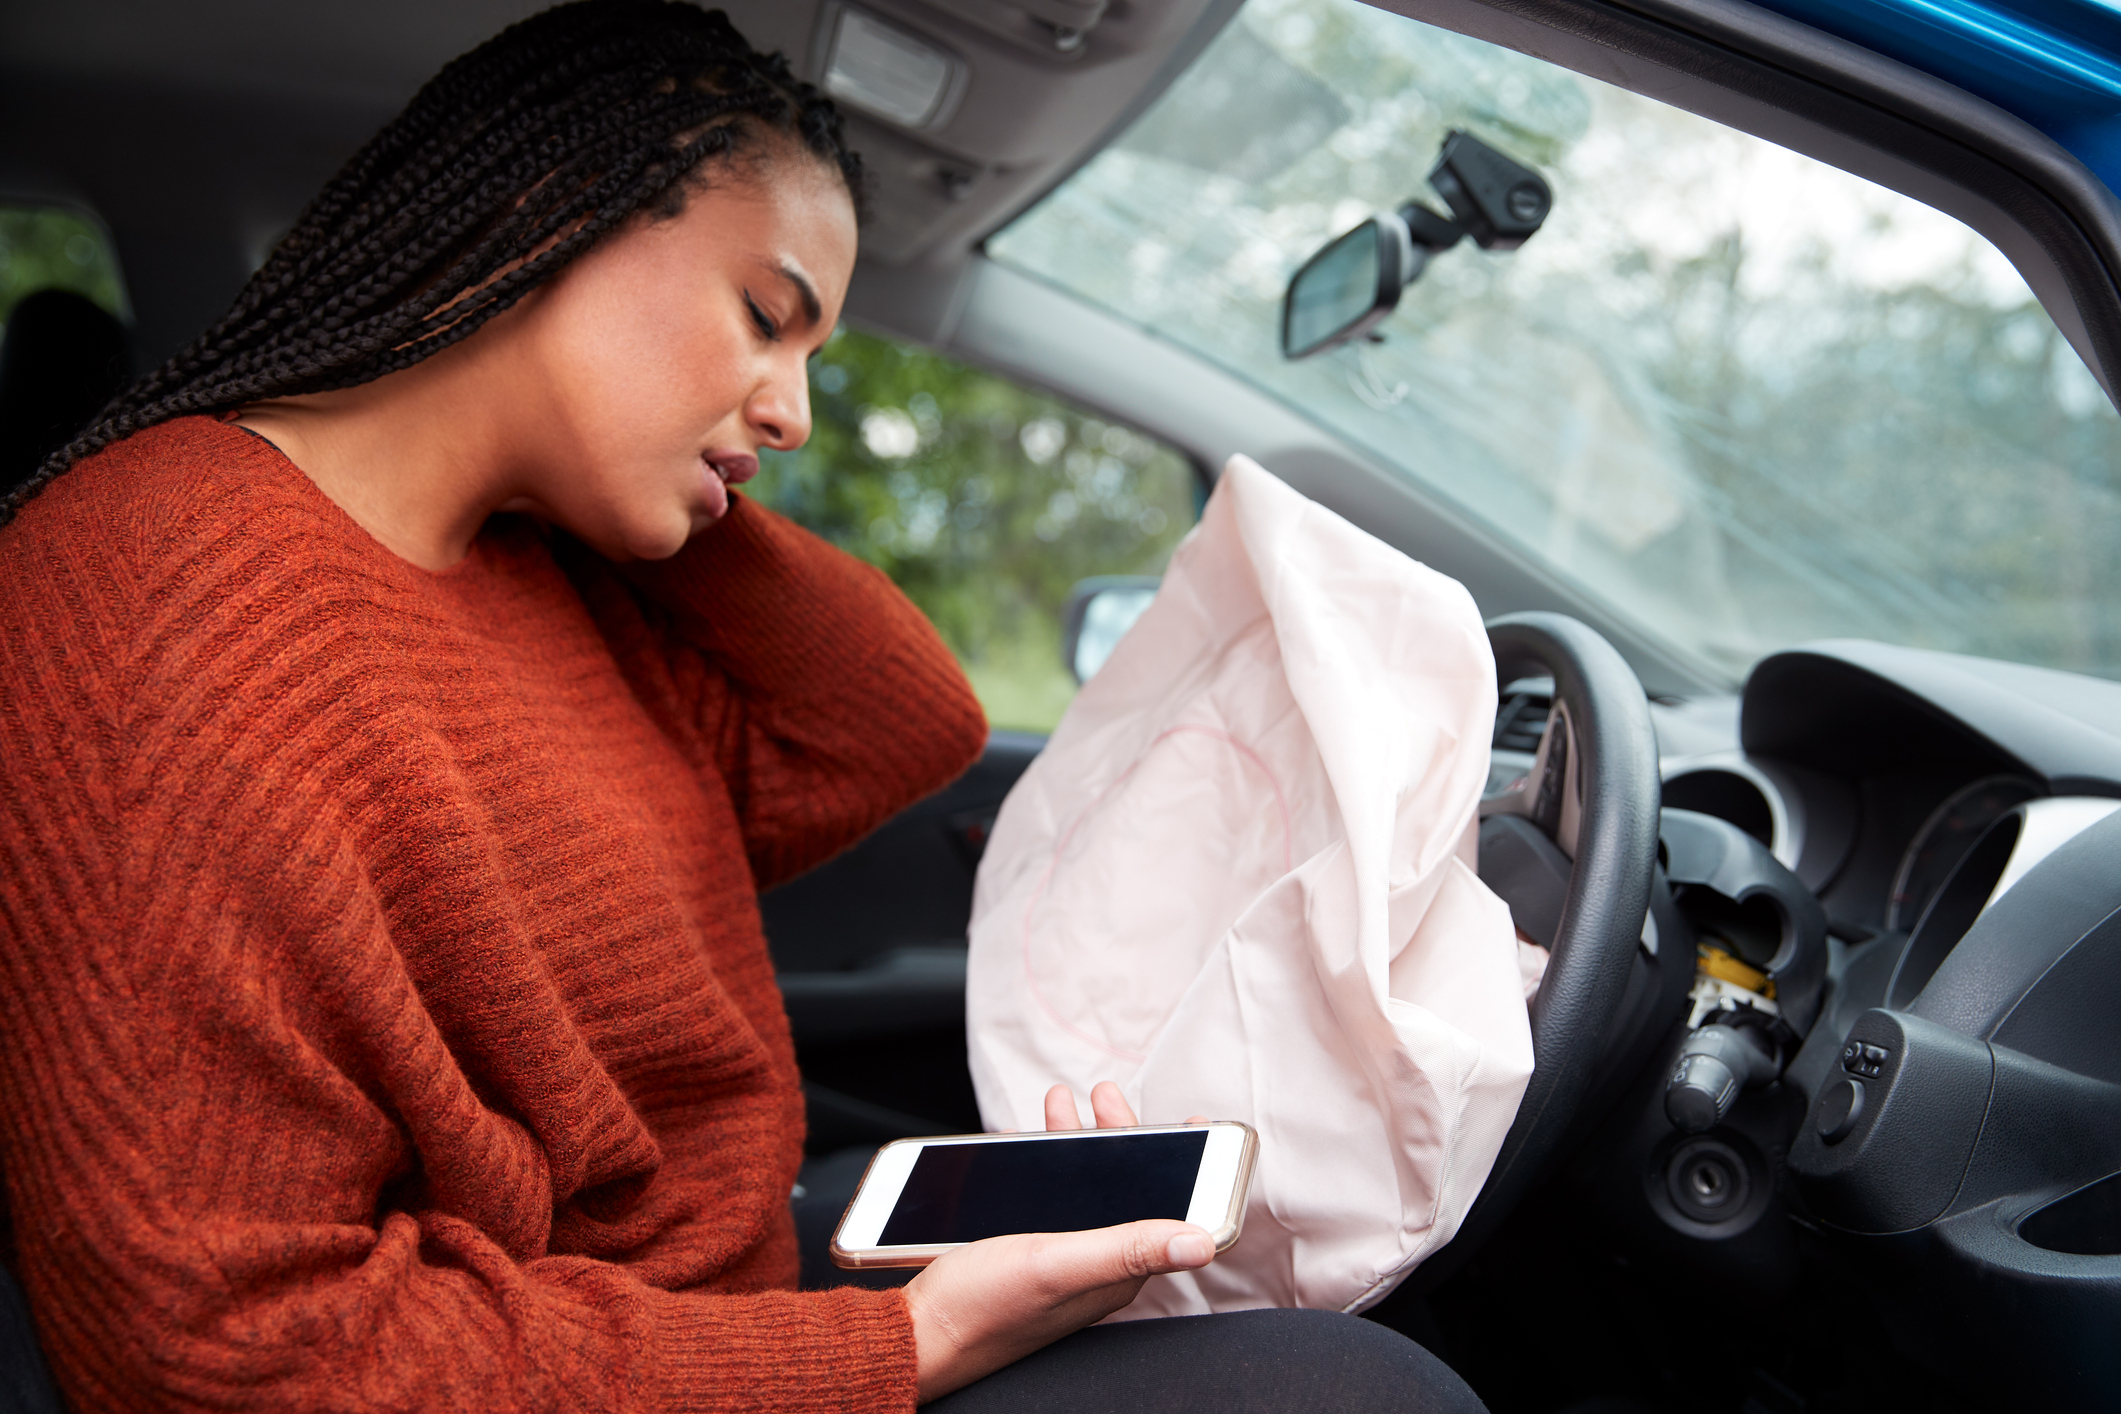 are airbags safe in your car?